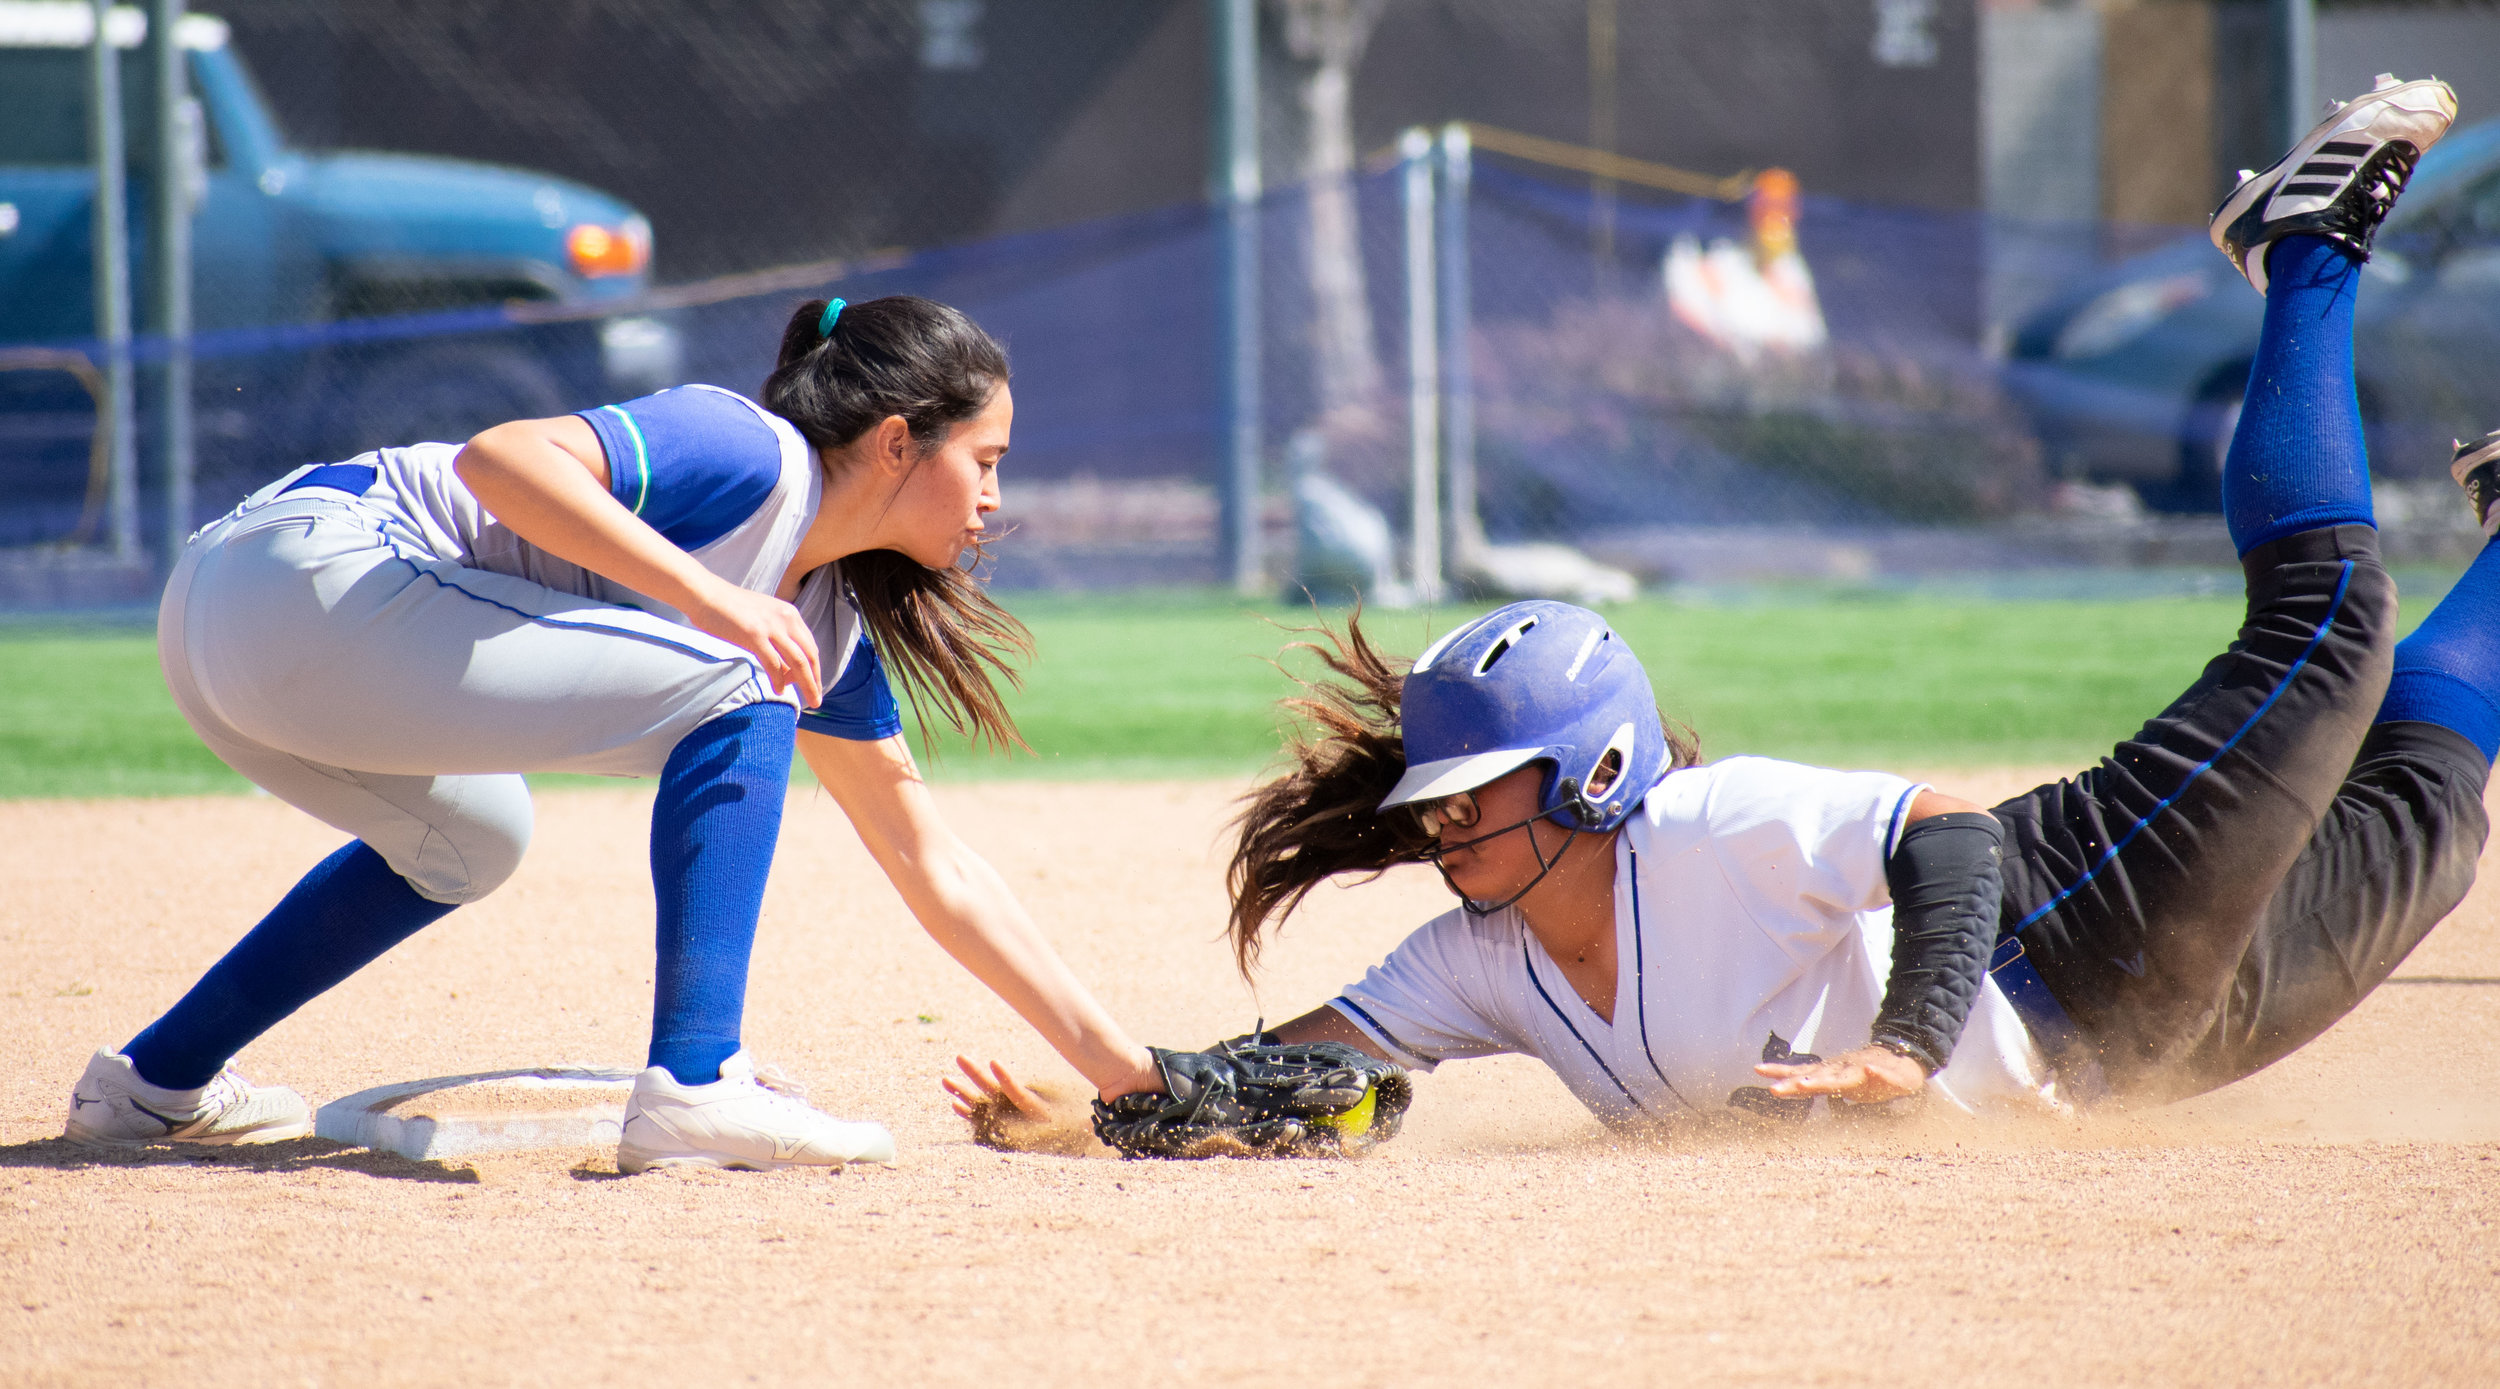 Santa Monica College Corsair Vania Garcia (#18) futilely slides into second base as Oxnard Condor Airin Lara (#1) taps her out in a softball game on Thursday, April 19, 2018 at the John Adams Middle School Field in Santa Monica, California. The game ended with an 3-2 win for the Corsairs, breaking a seven-game losing streak on their penultimate game of the season. (Ethan Lauren/Corsair Photo)